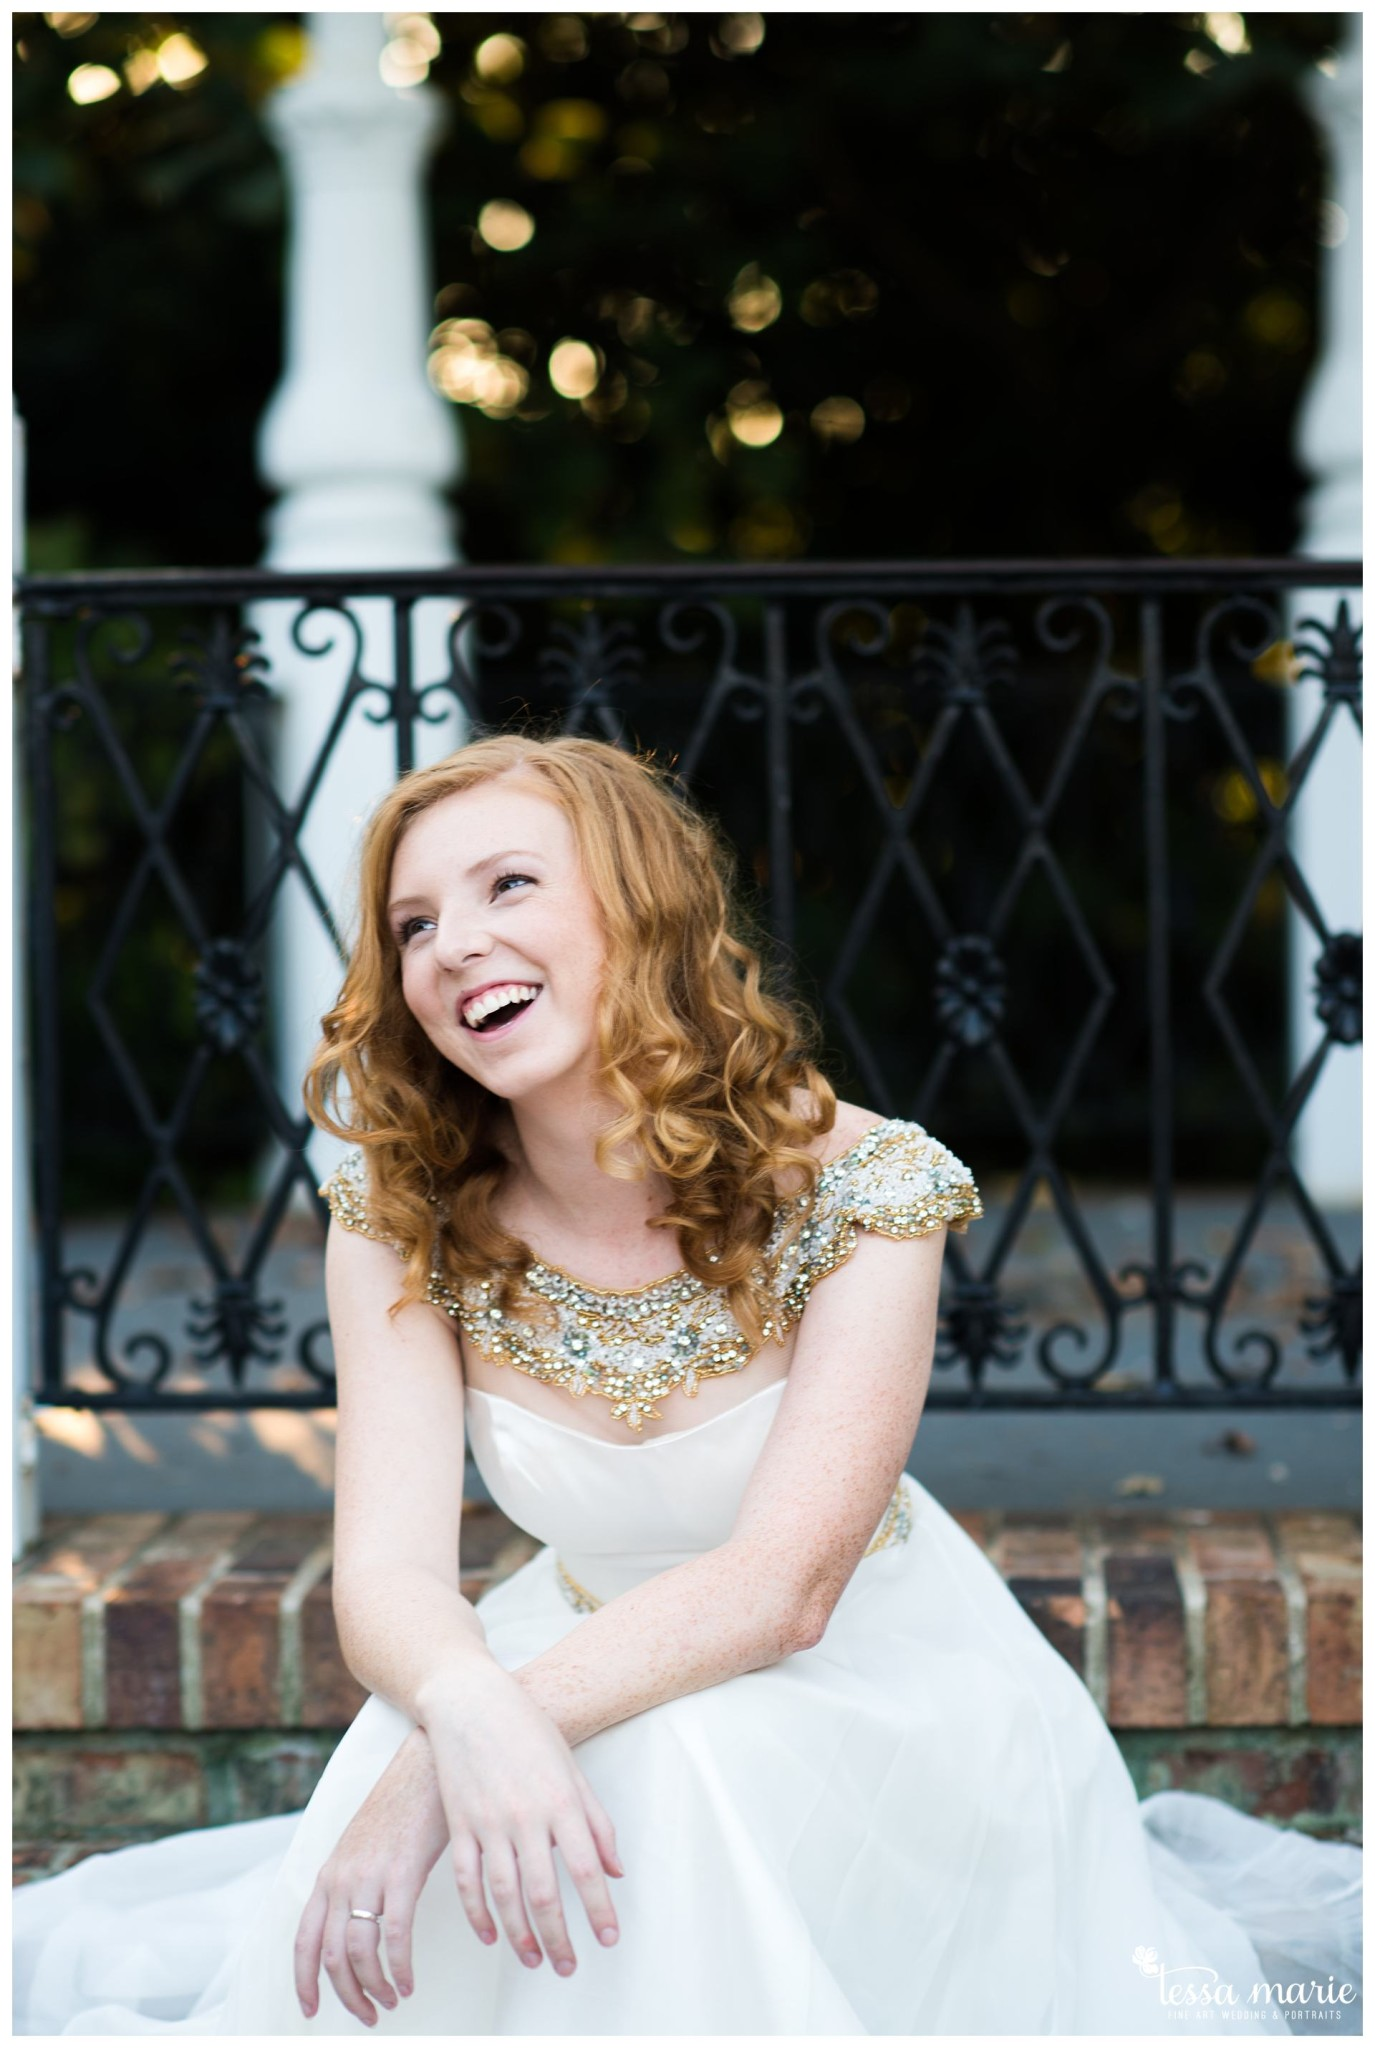 tessa_marie_weddings_legacy_story_focused_wedding_pictures_atlanta_wedding_photographer_family_pictures_portrait_Fine_art_memories_mothers_day_spring_moments_0325